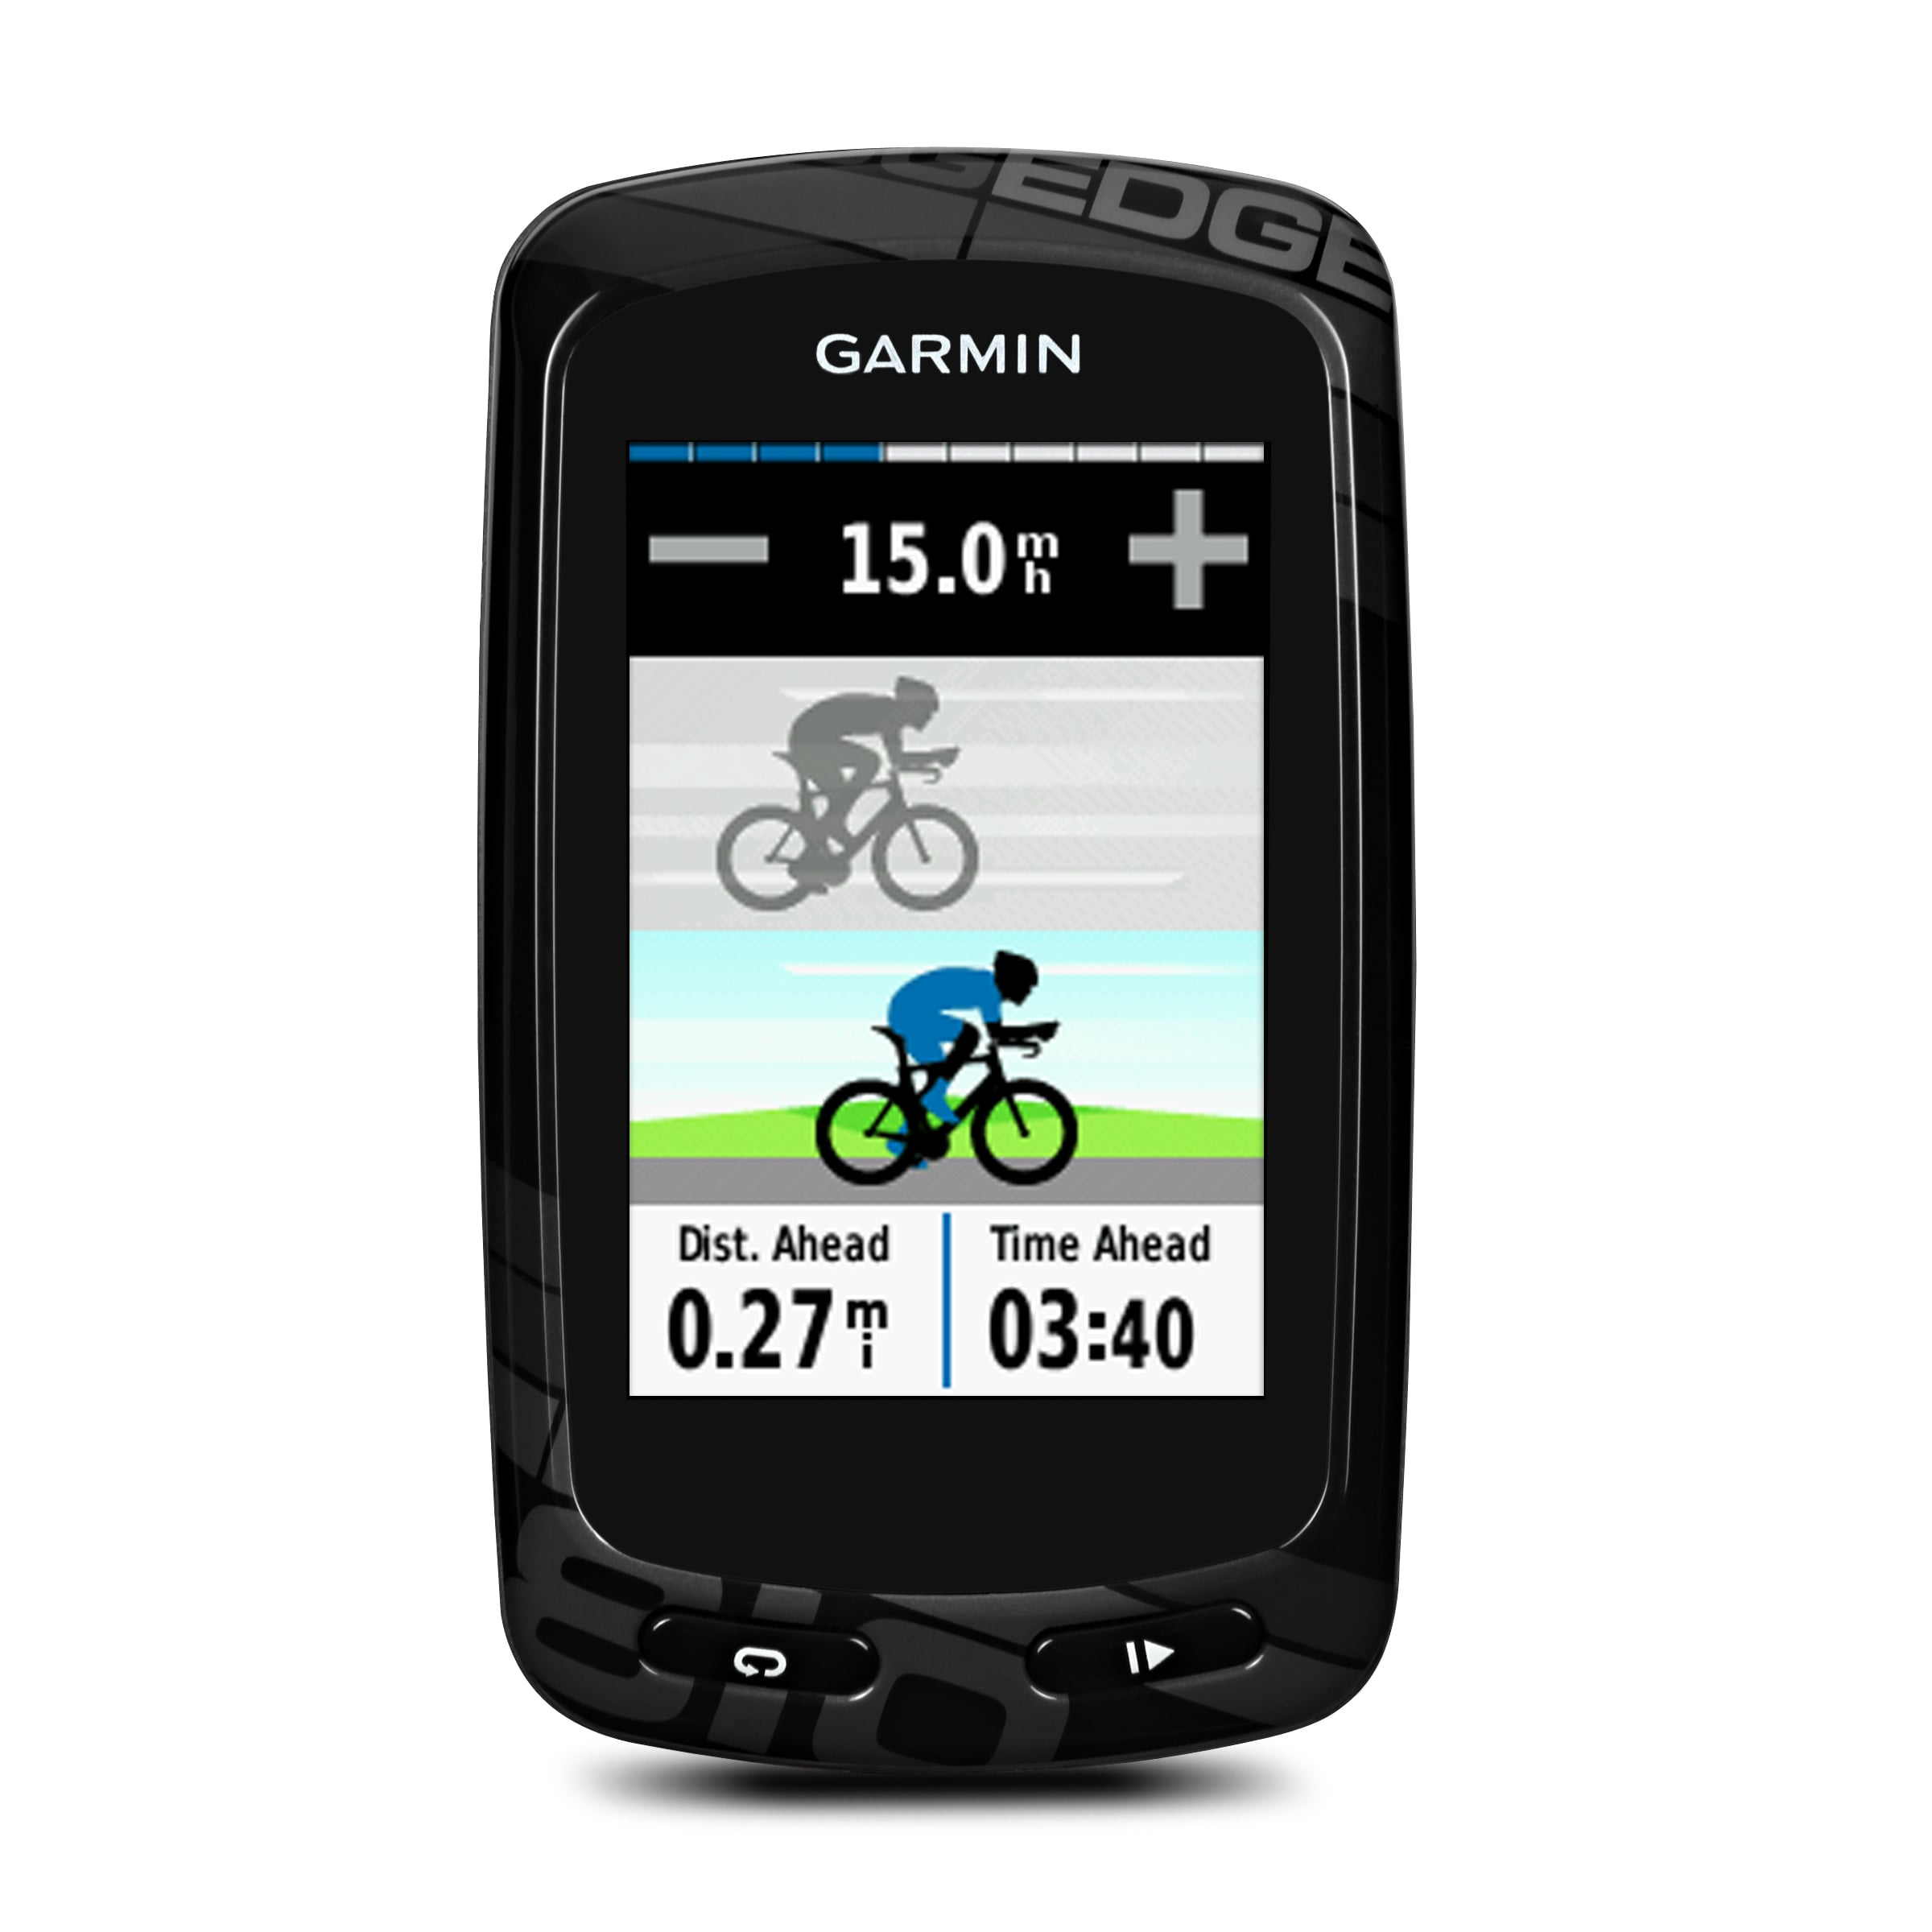 GarminEdge810